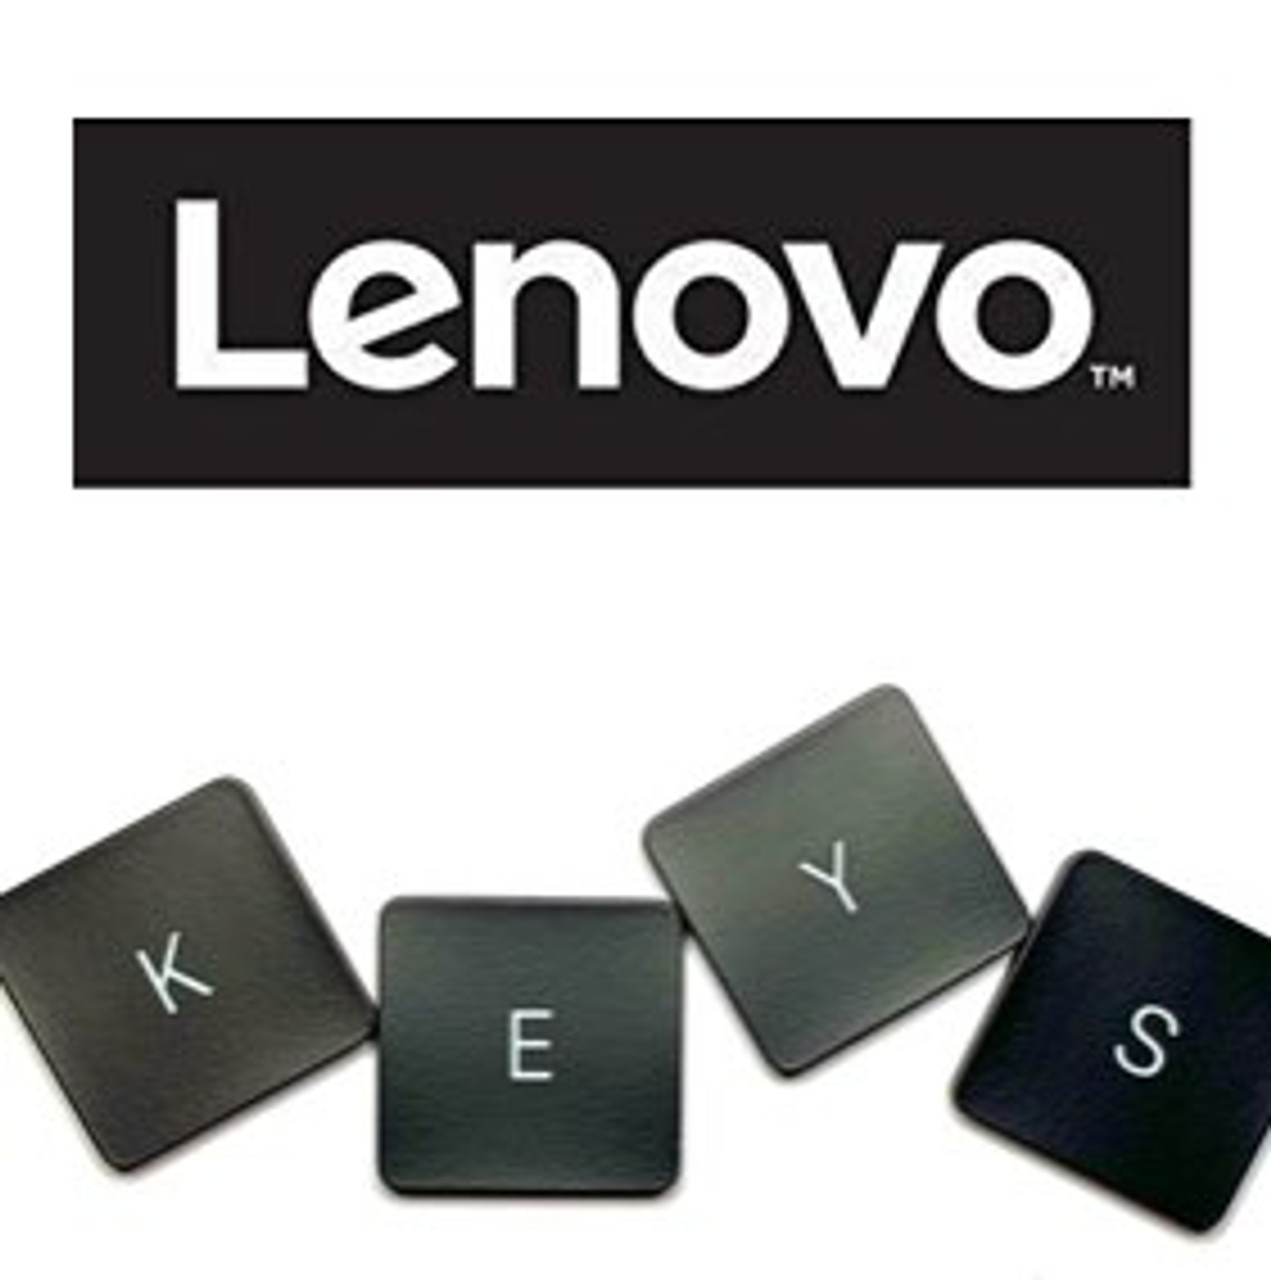 Lenovo ChromeBook N21 Keyboard Key Replacement